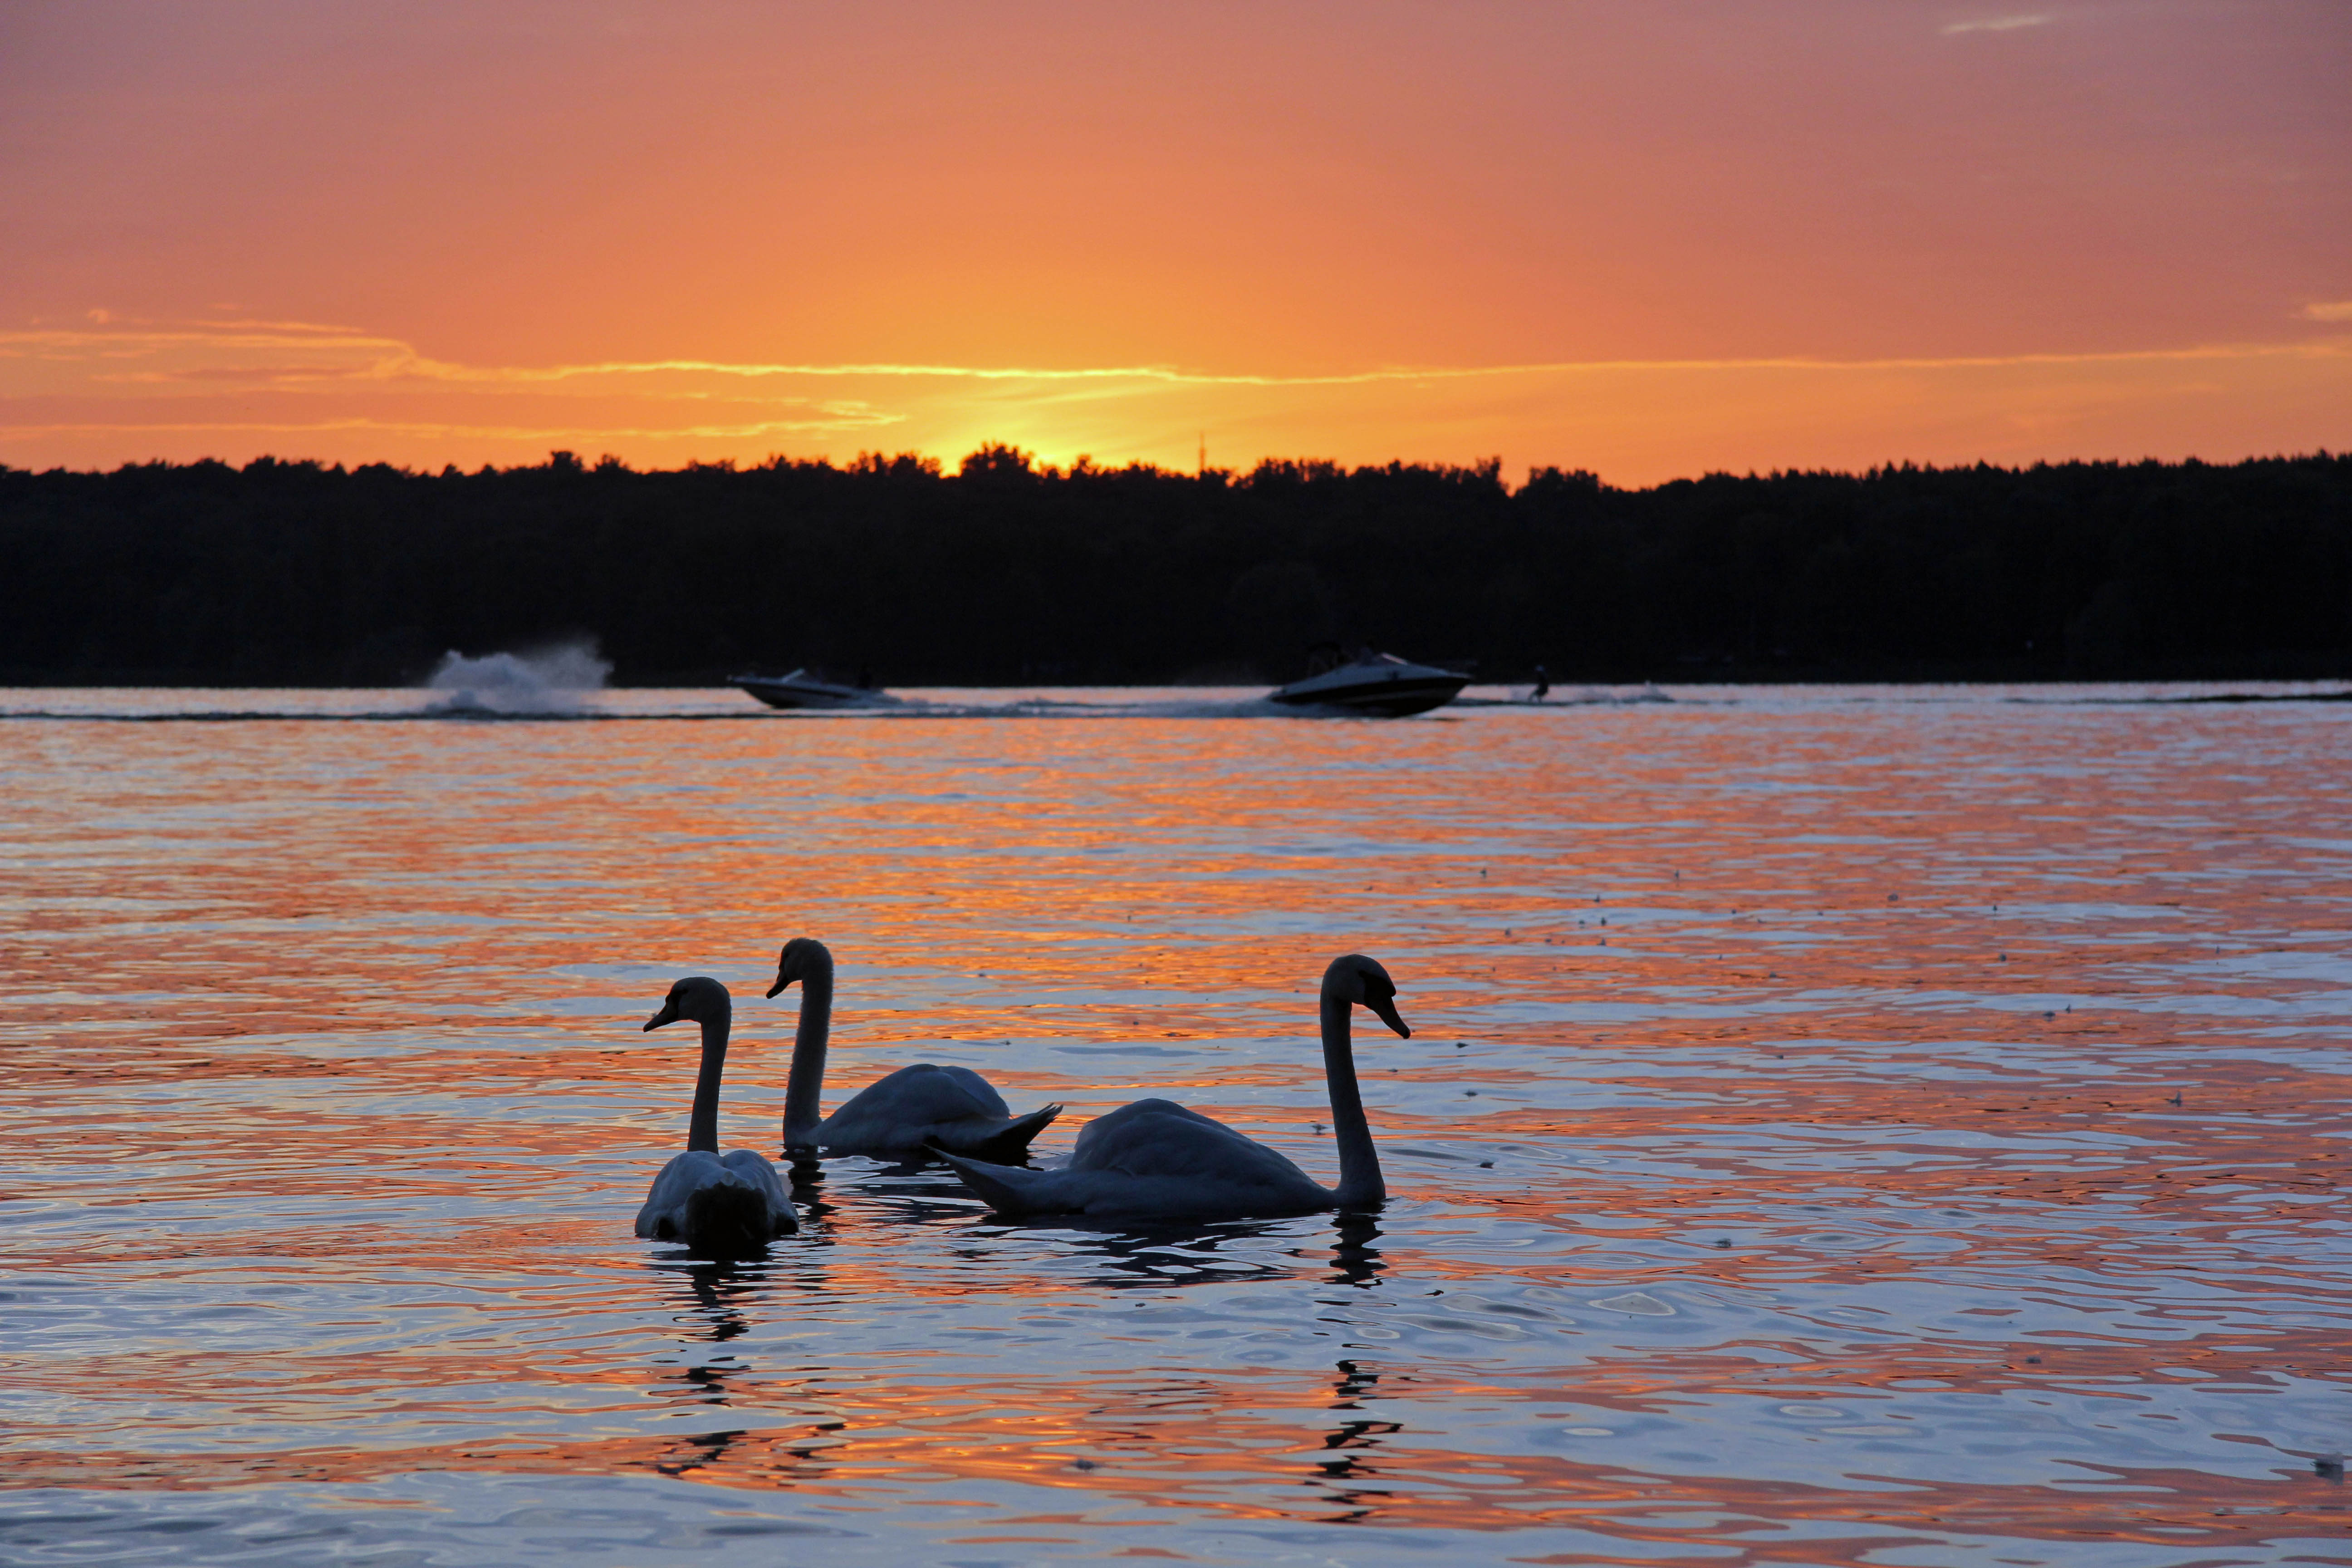 Waterskiers make the most of the day's last light and swans swim in the foreground during the sunset over the lake at Wannsee in Berlin